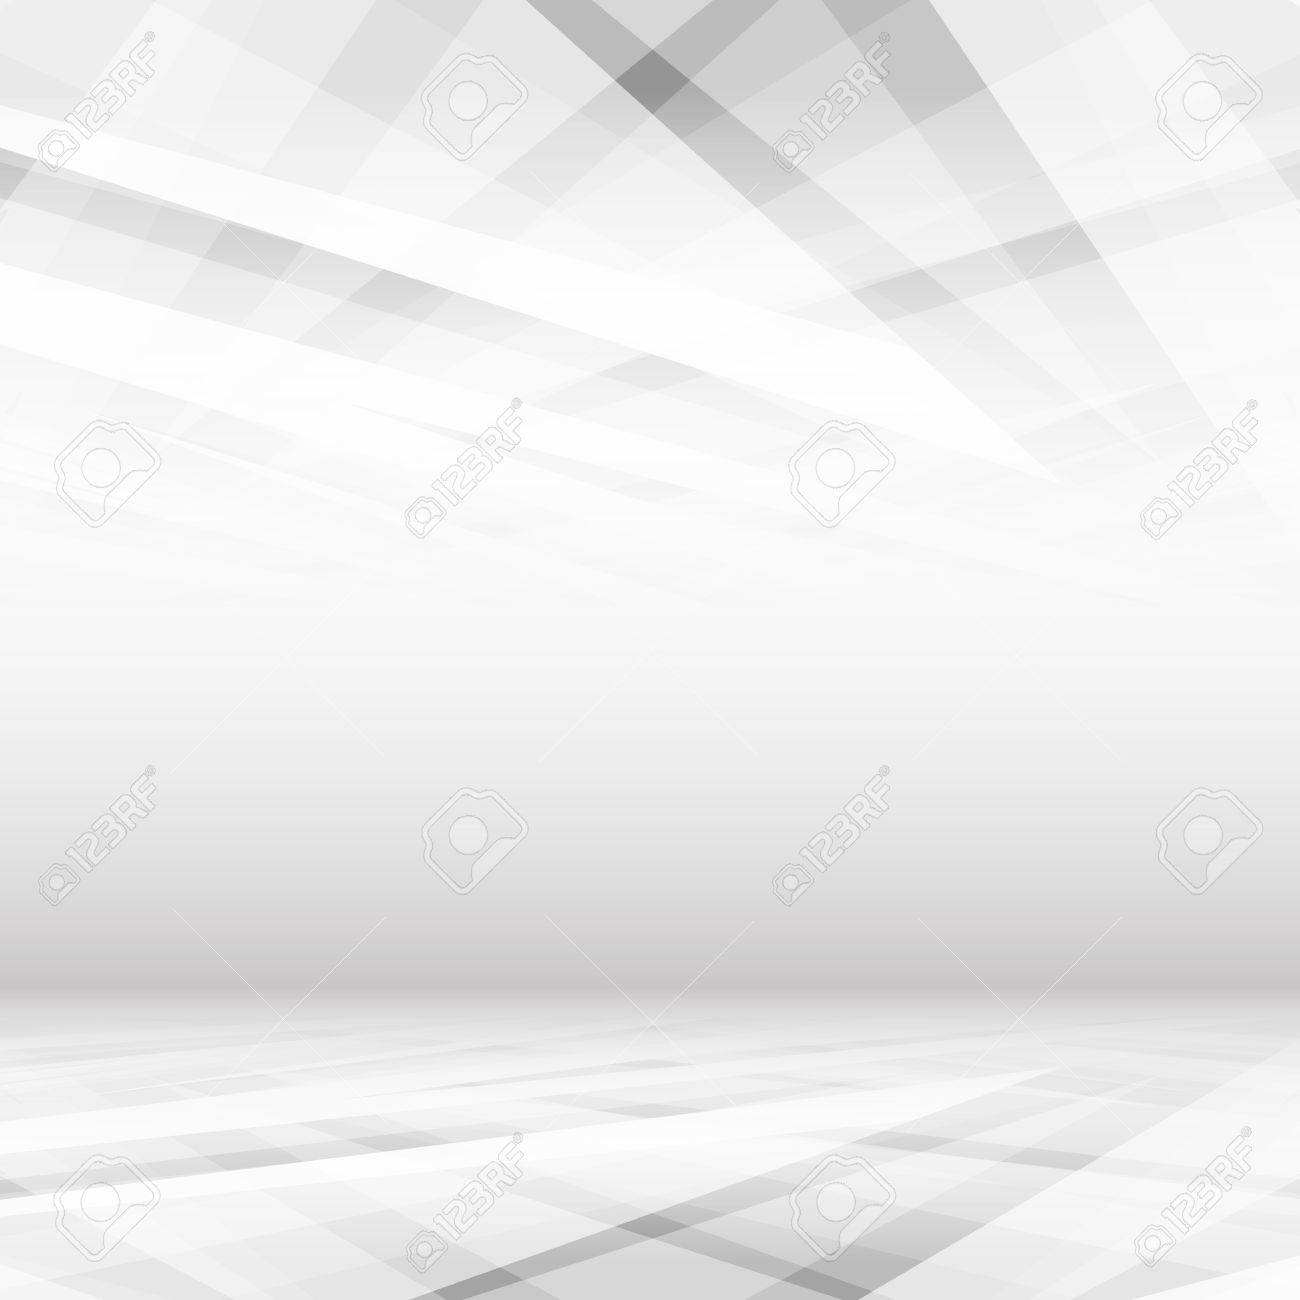 Background image opacity html - Abstract Background Illustration Used Opacity Mask And Transparency Layers Of Background Stock Vector 29190284